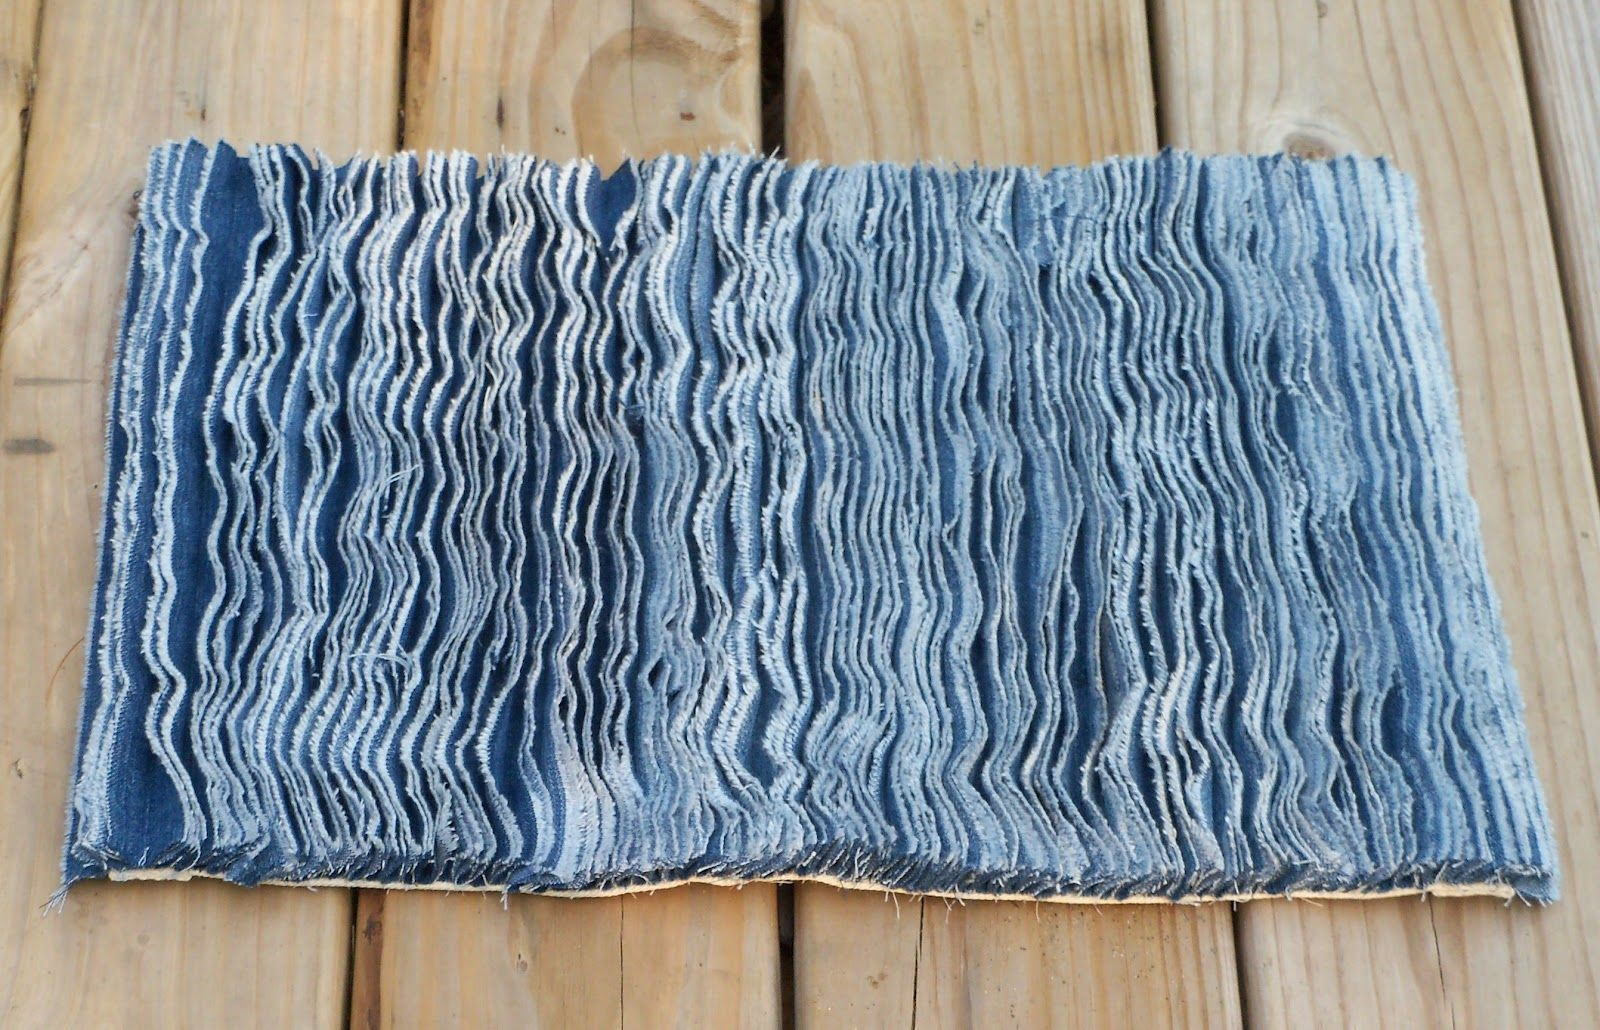 Sewing Cafe Denim Floor Mats Denim Rug Denim Quilt Denim Crafts